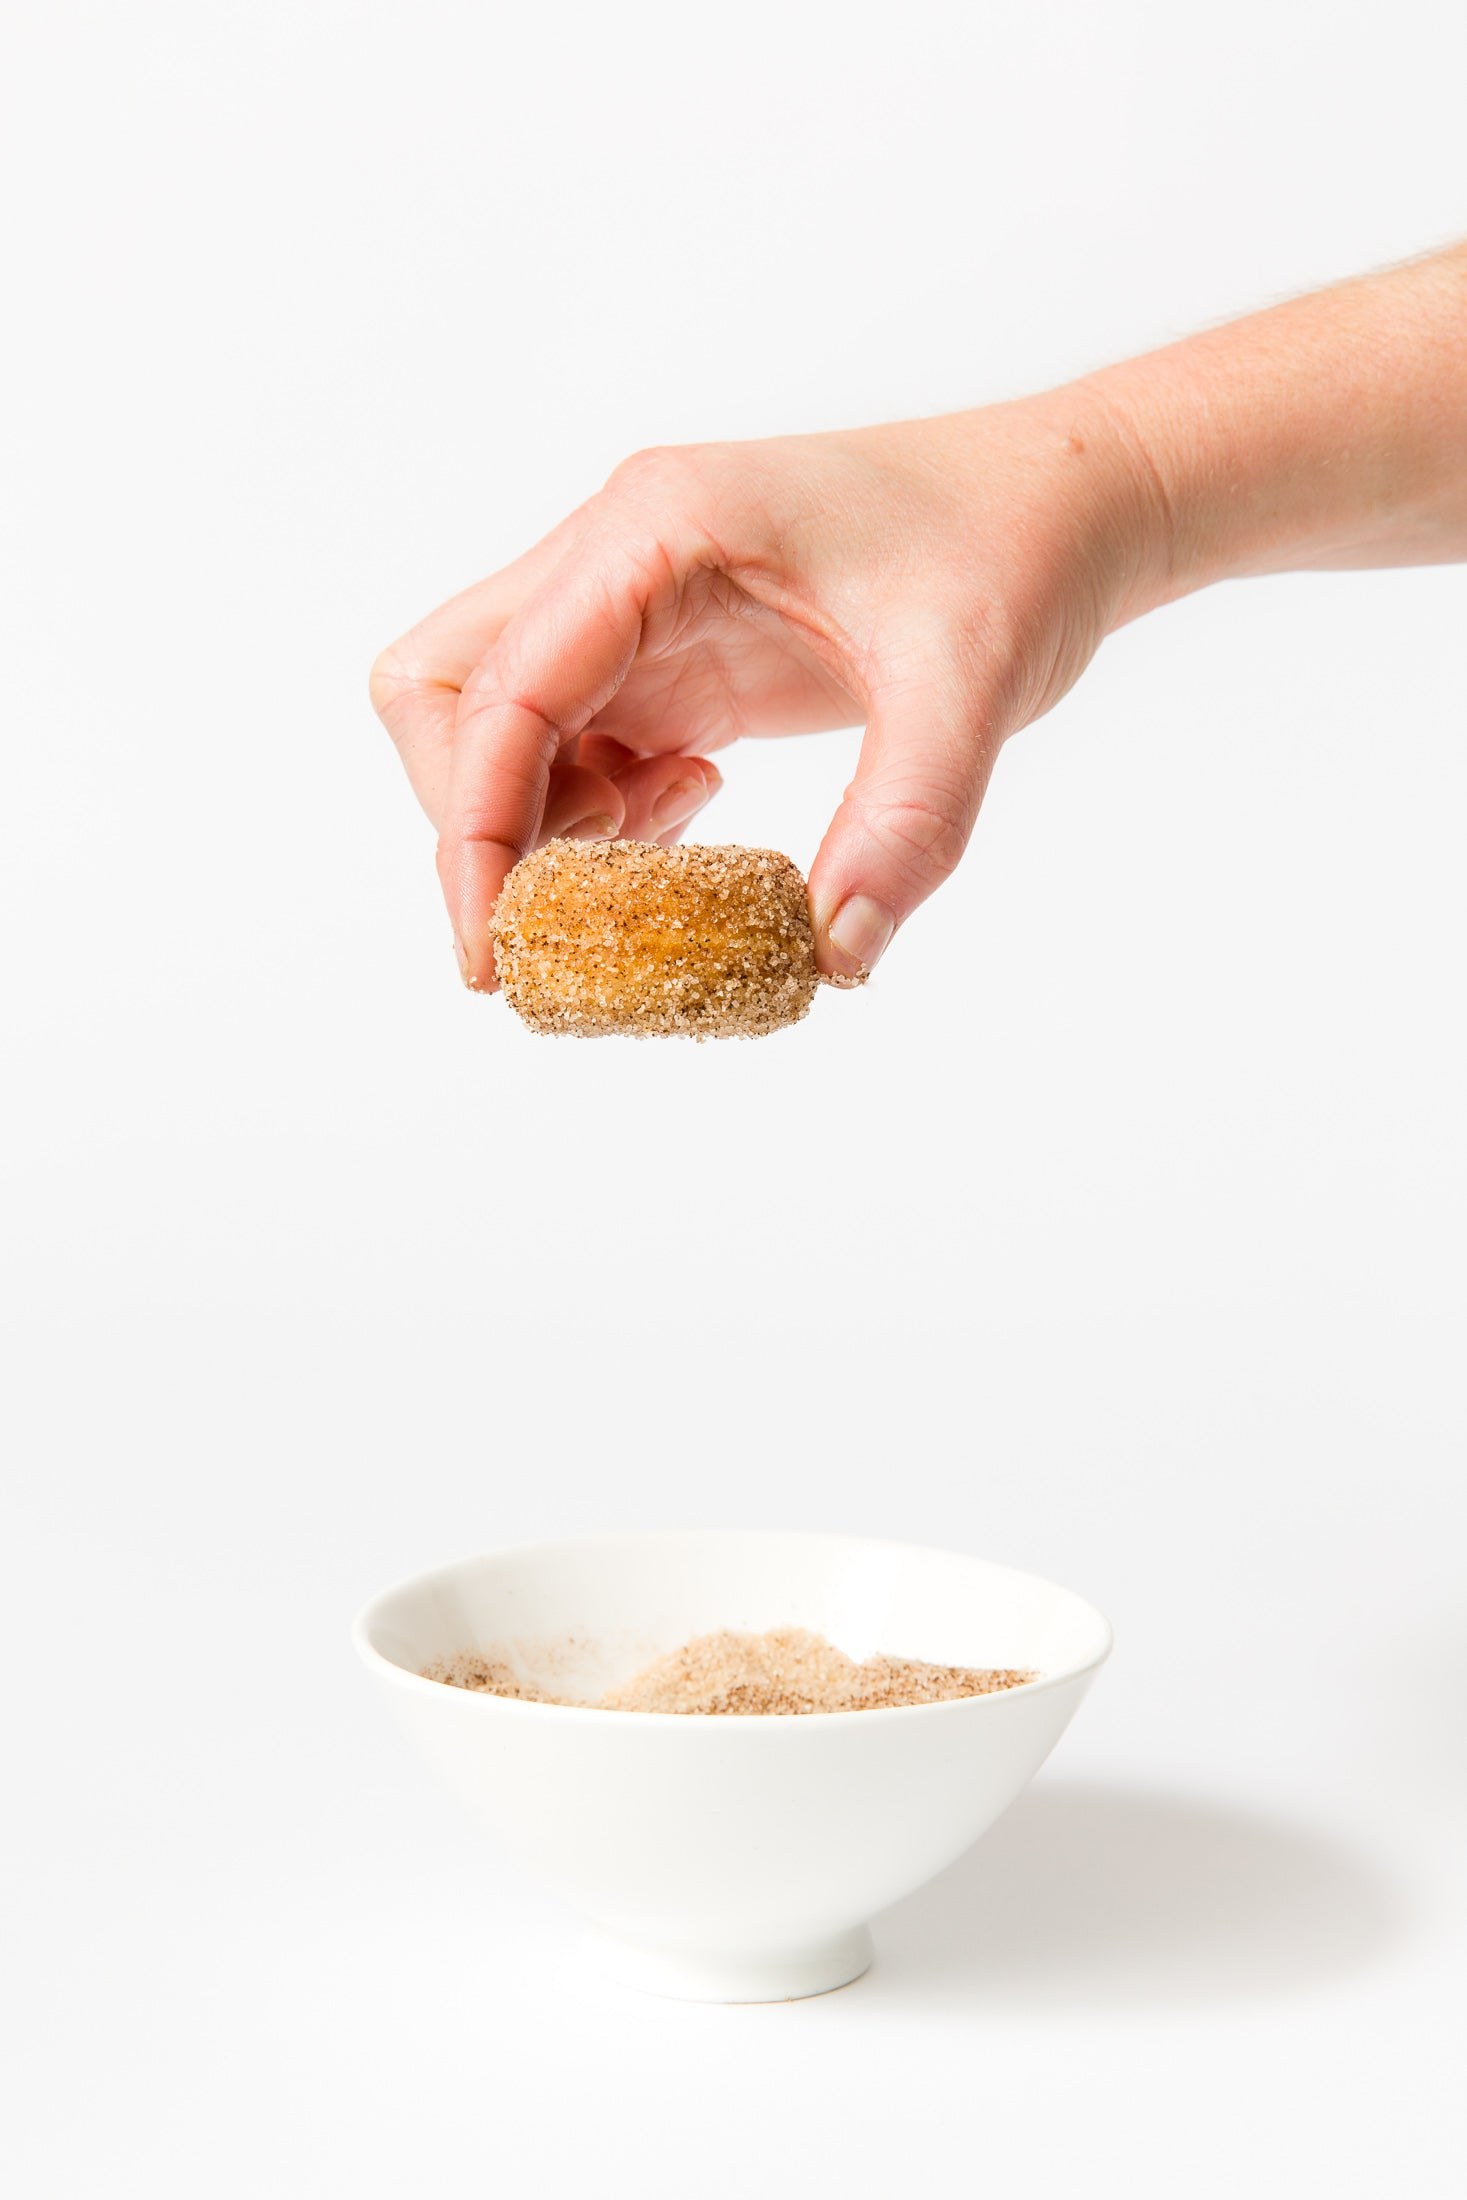 Image of a hand holding a Miss Jones Baking Co Dirty Chai Mini Donut above a bowl of cinnamon sugar